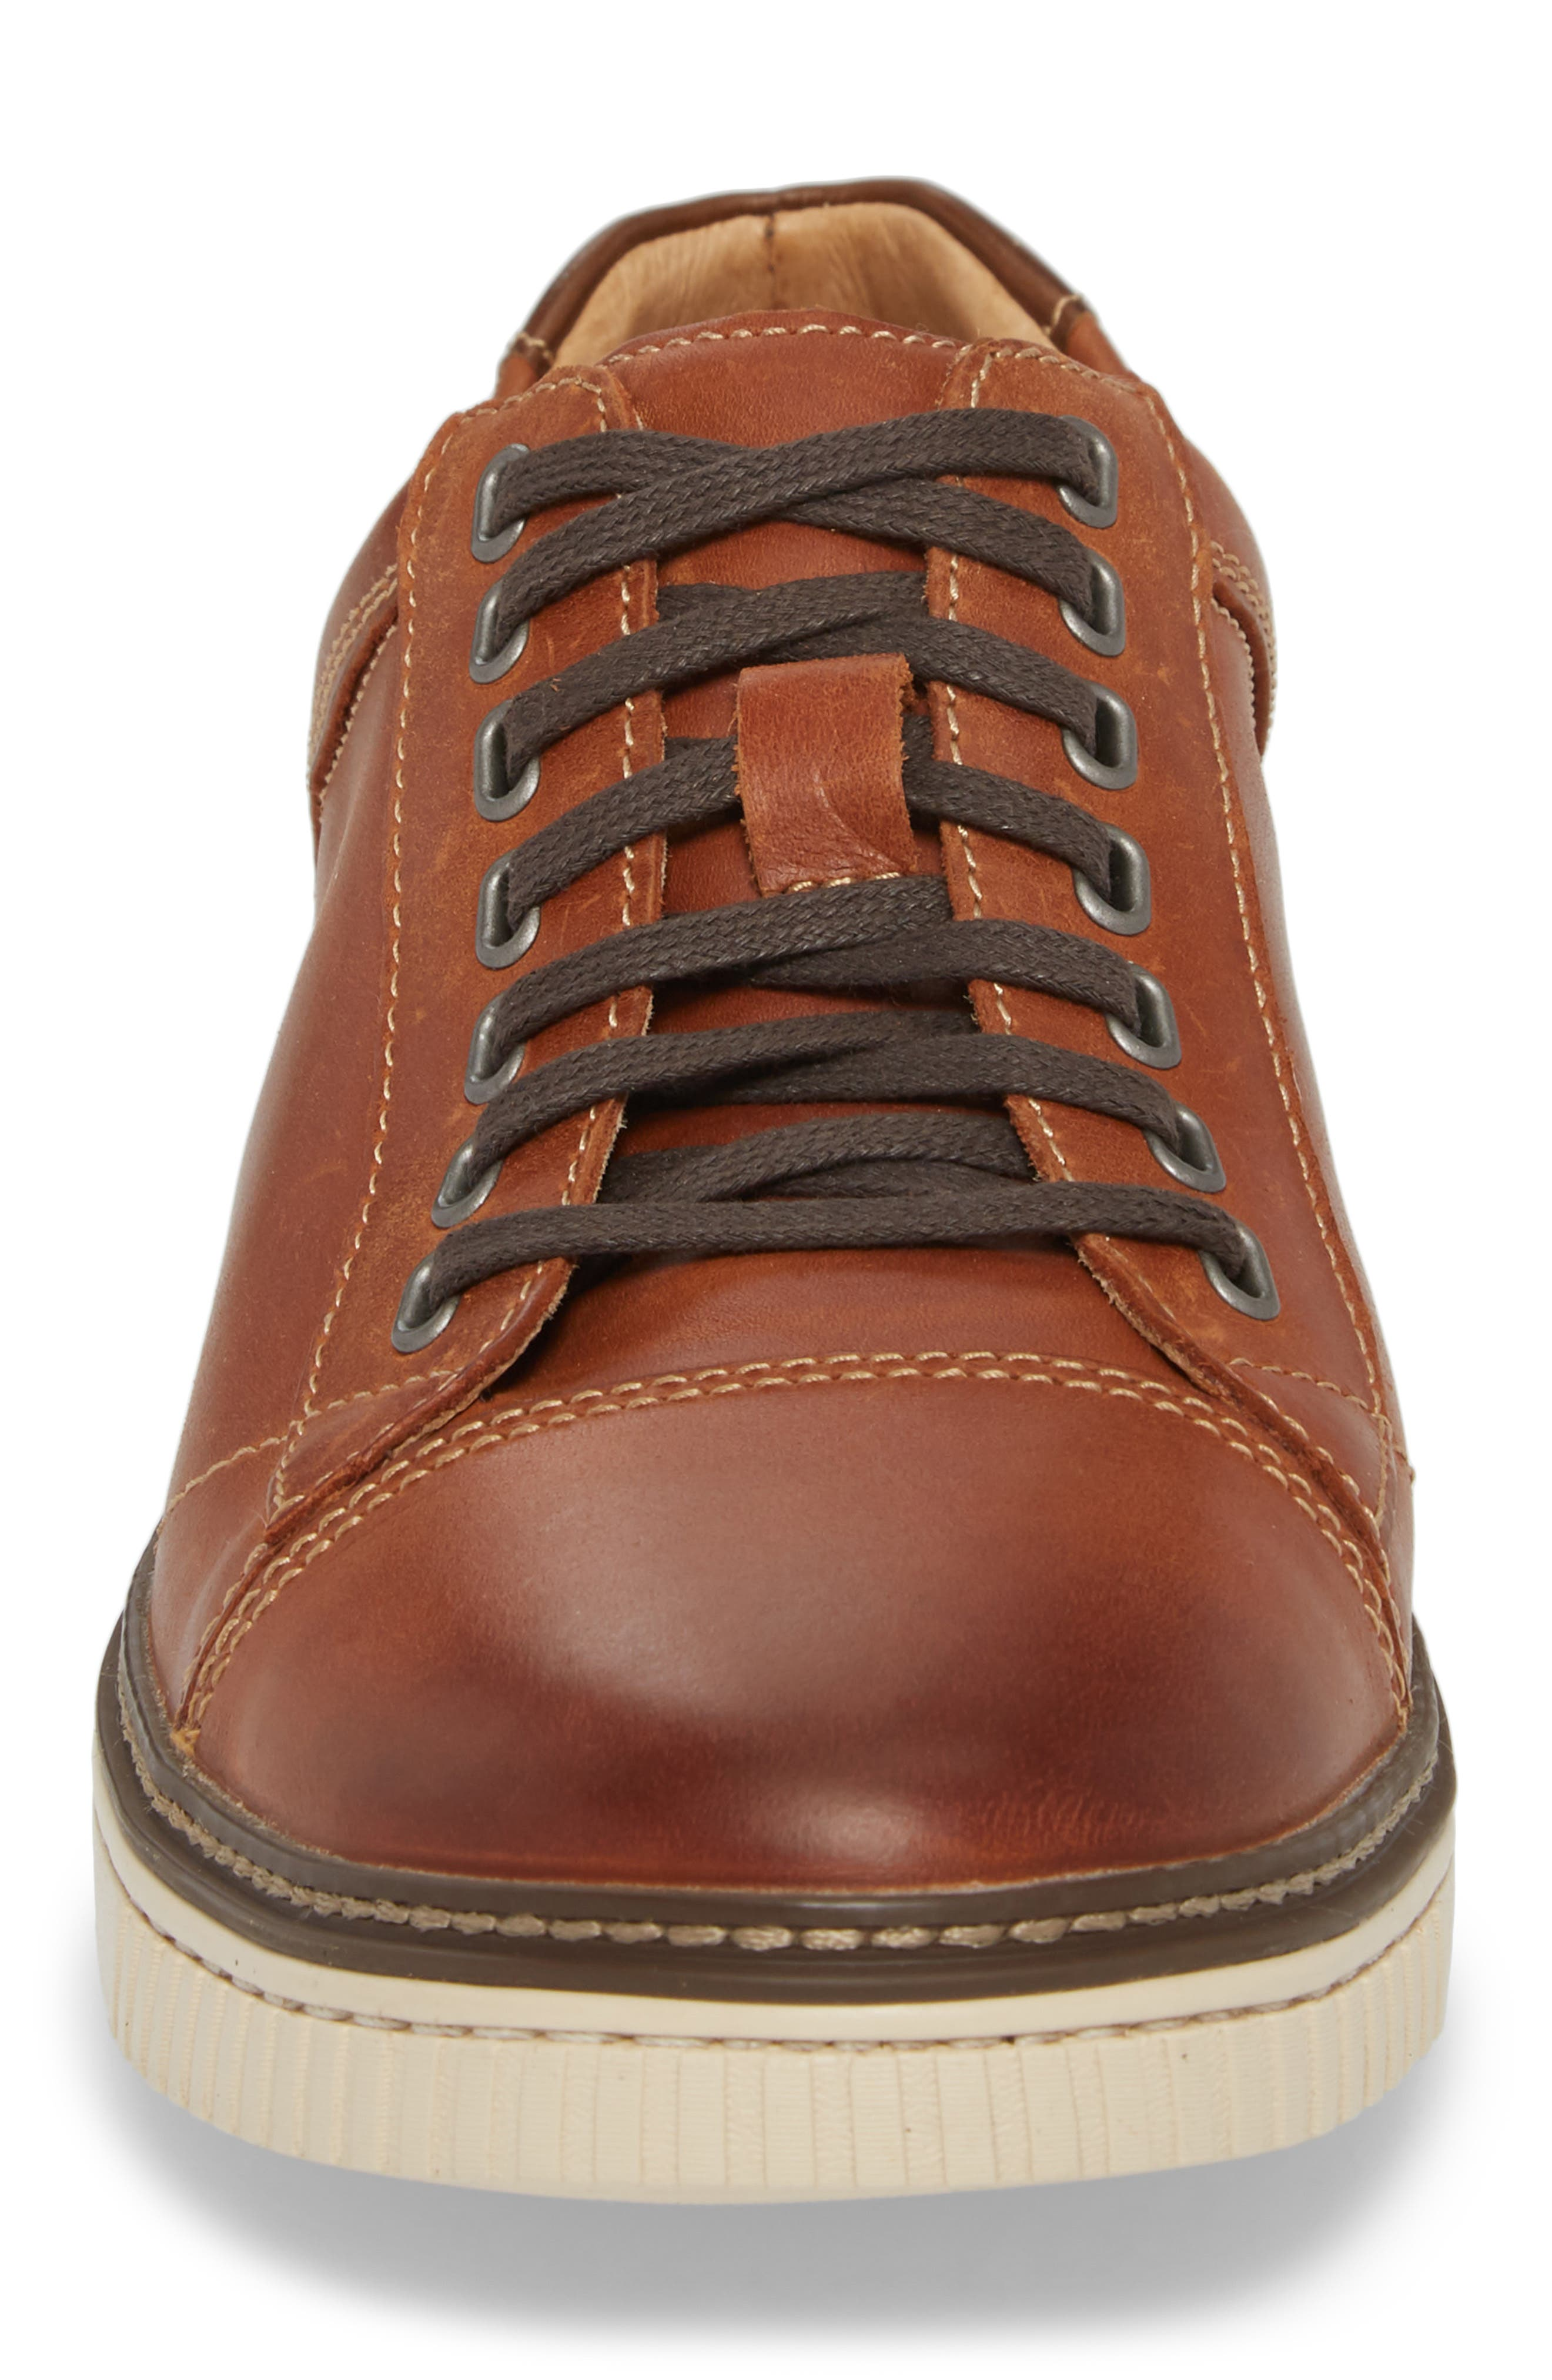 Wallace Low Top Sneaker,                             Alternate thumbnail 4, color,                             TAN NUBUCK